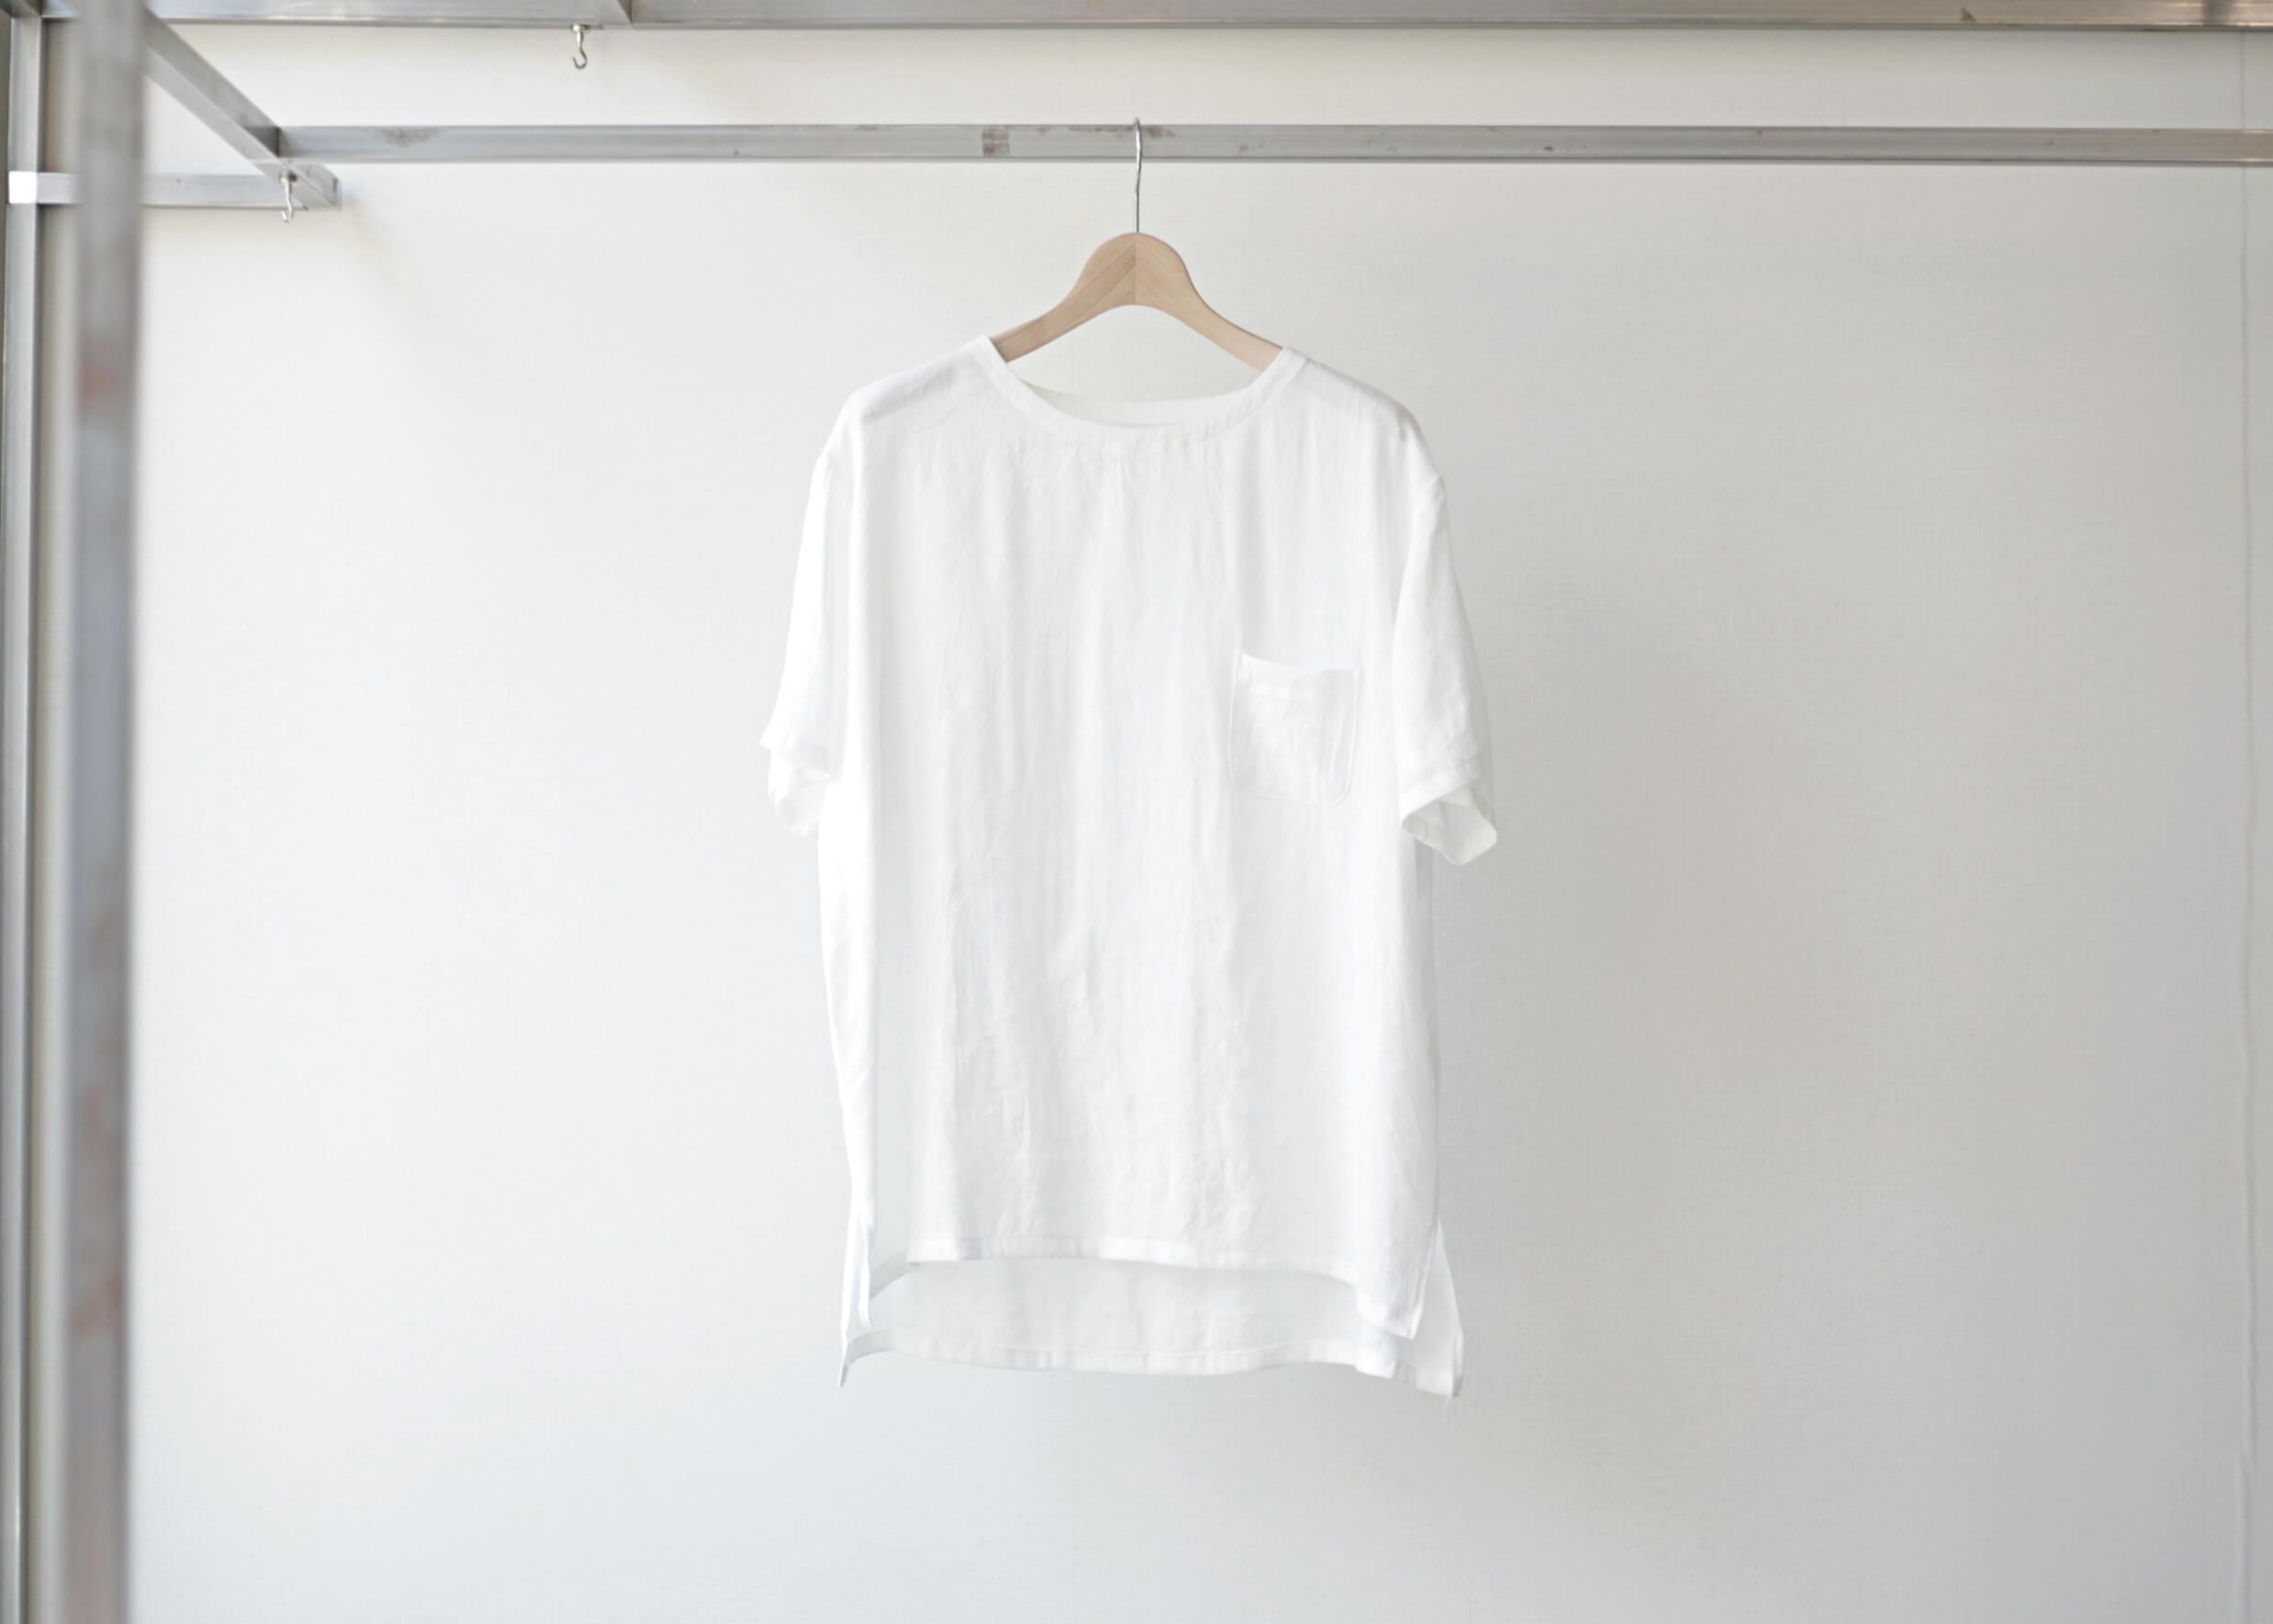 thee linen tee white 正面の写真